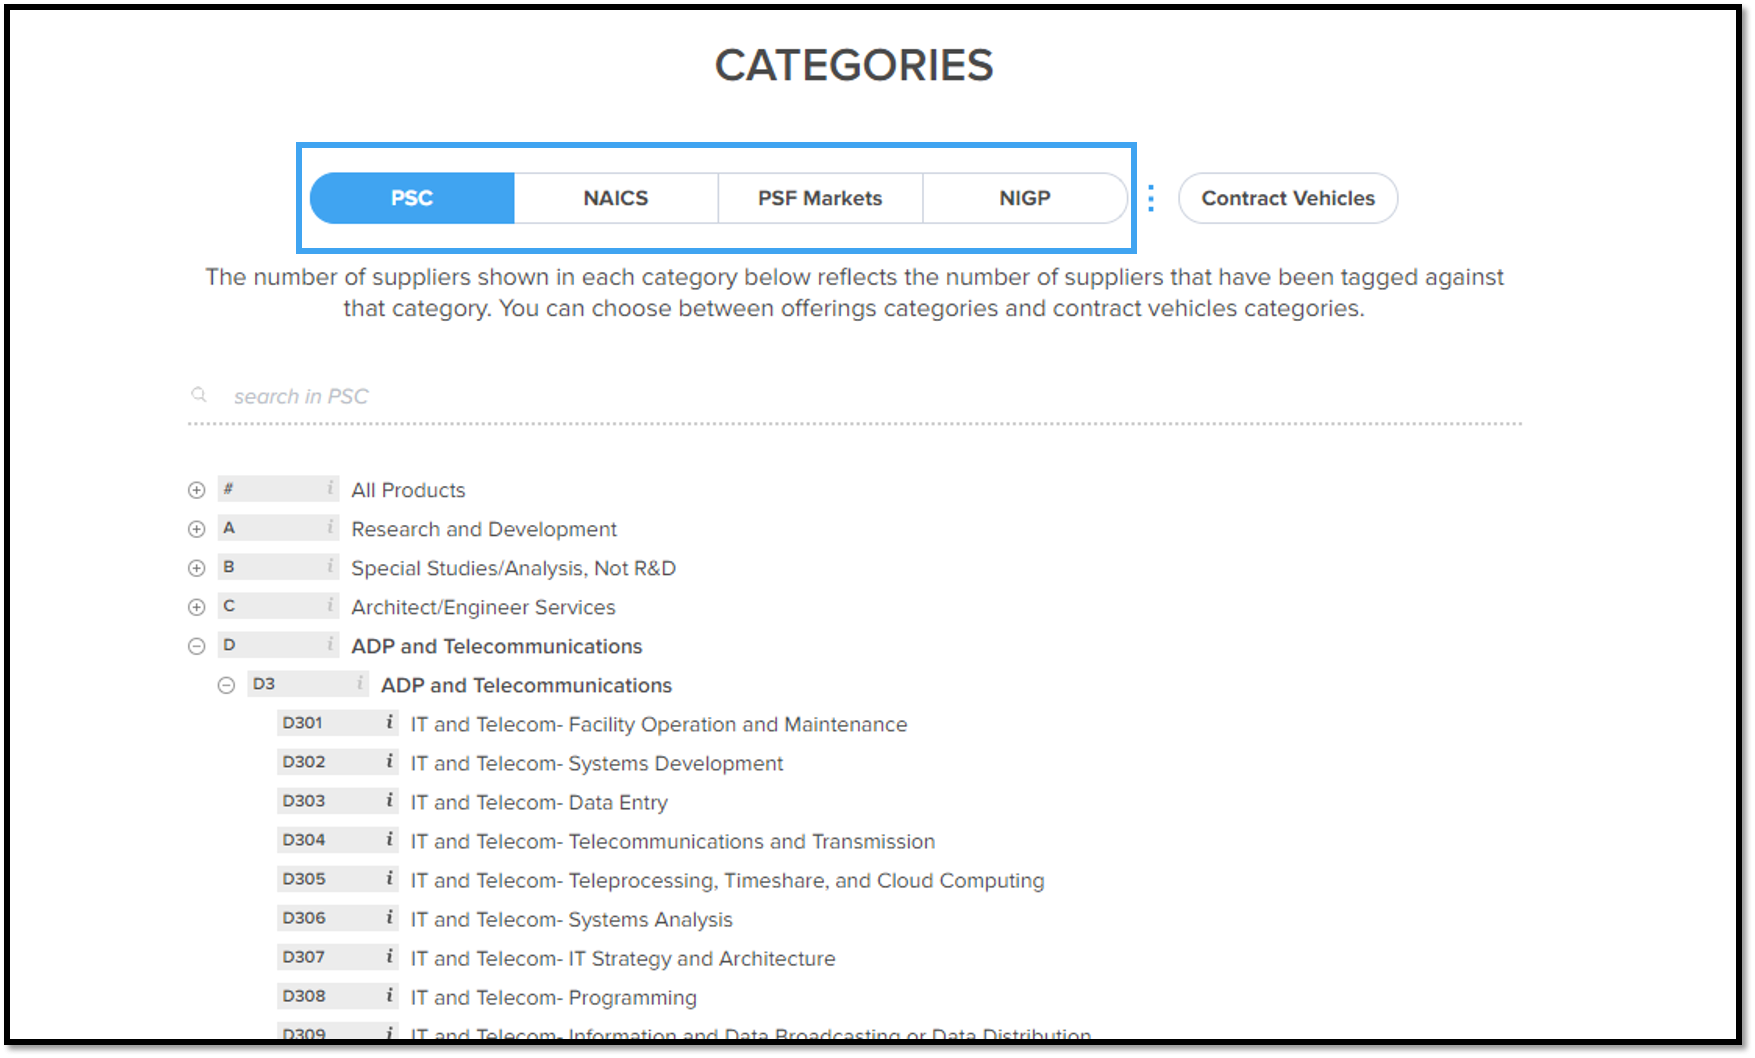 GovShop category codes help government contracting professionals navigate the complex public sector marketplace